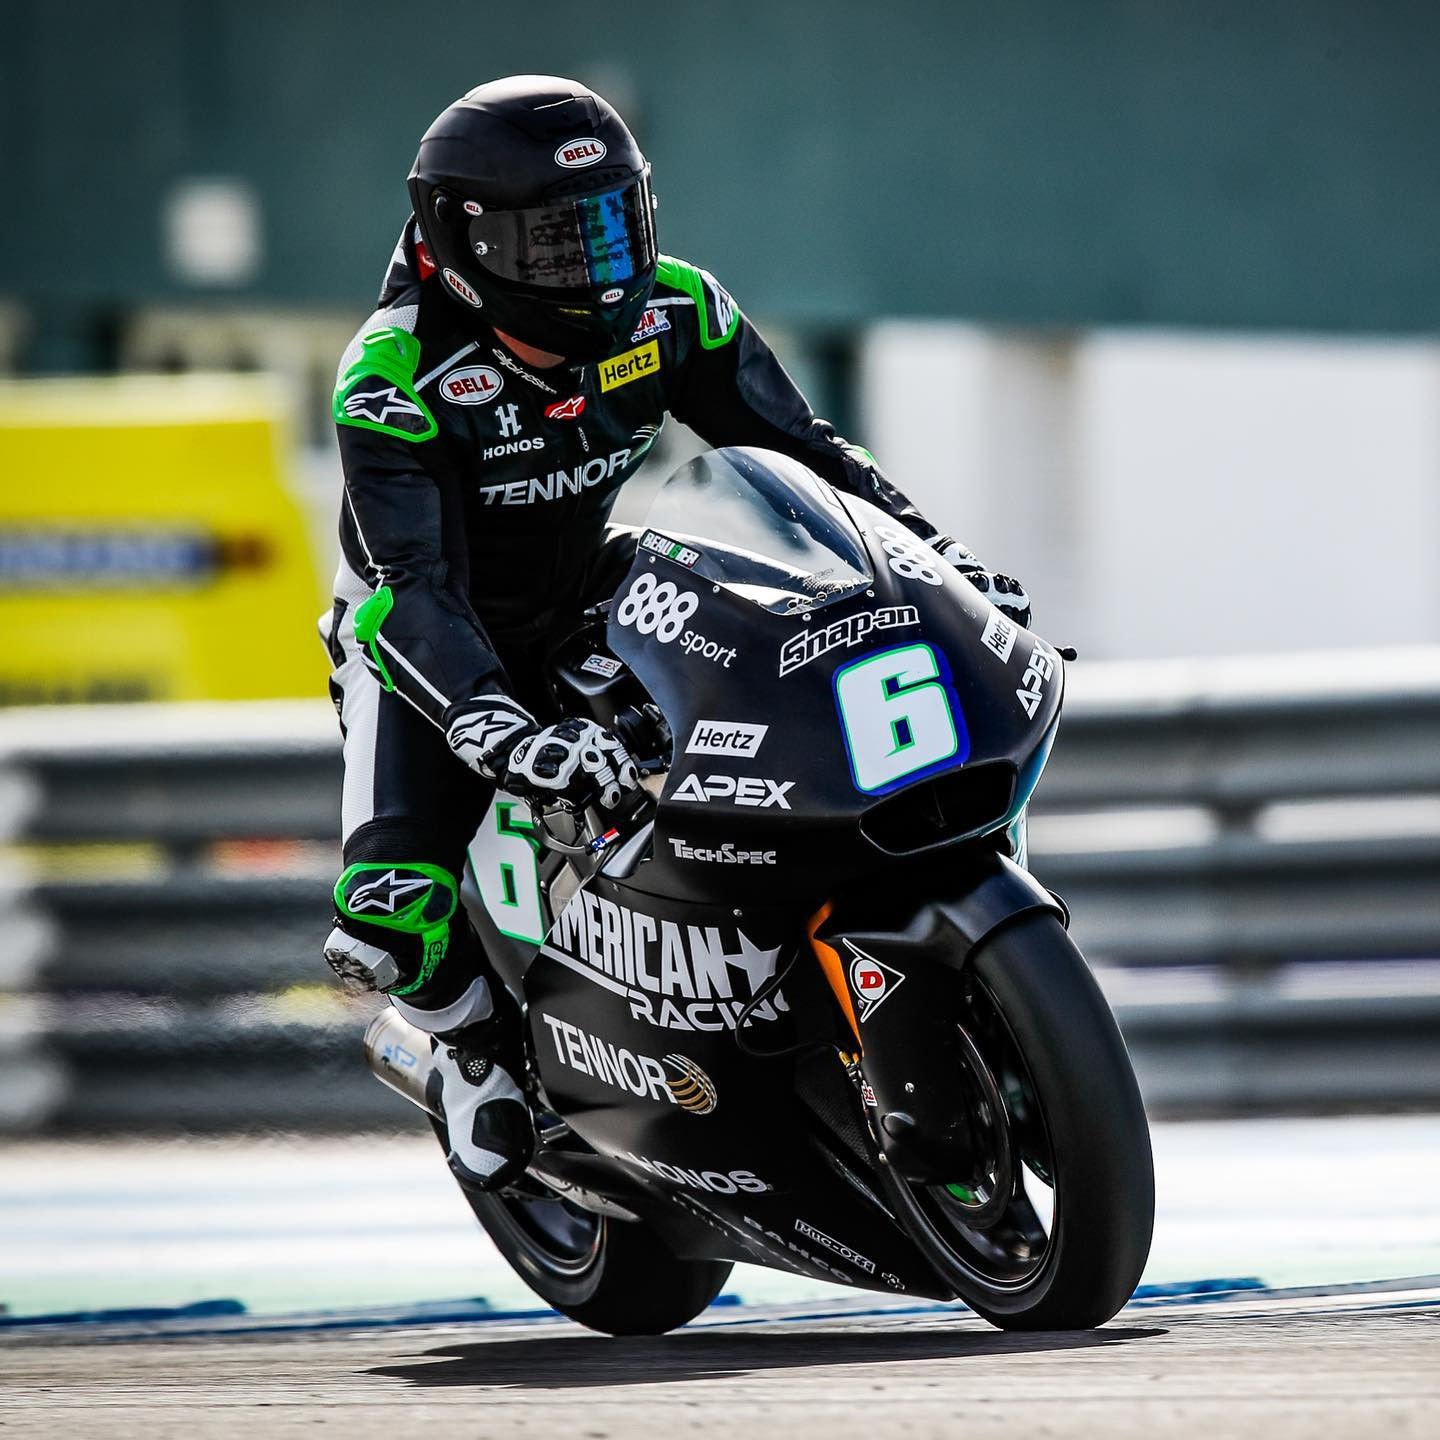 Cameron Beaubier (6) in action on his new Kalex Moto2 racebike at Jerez. Photo courtesy American Racing Team.